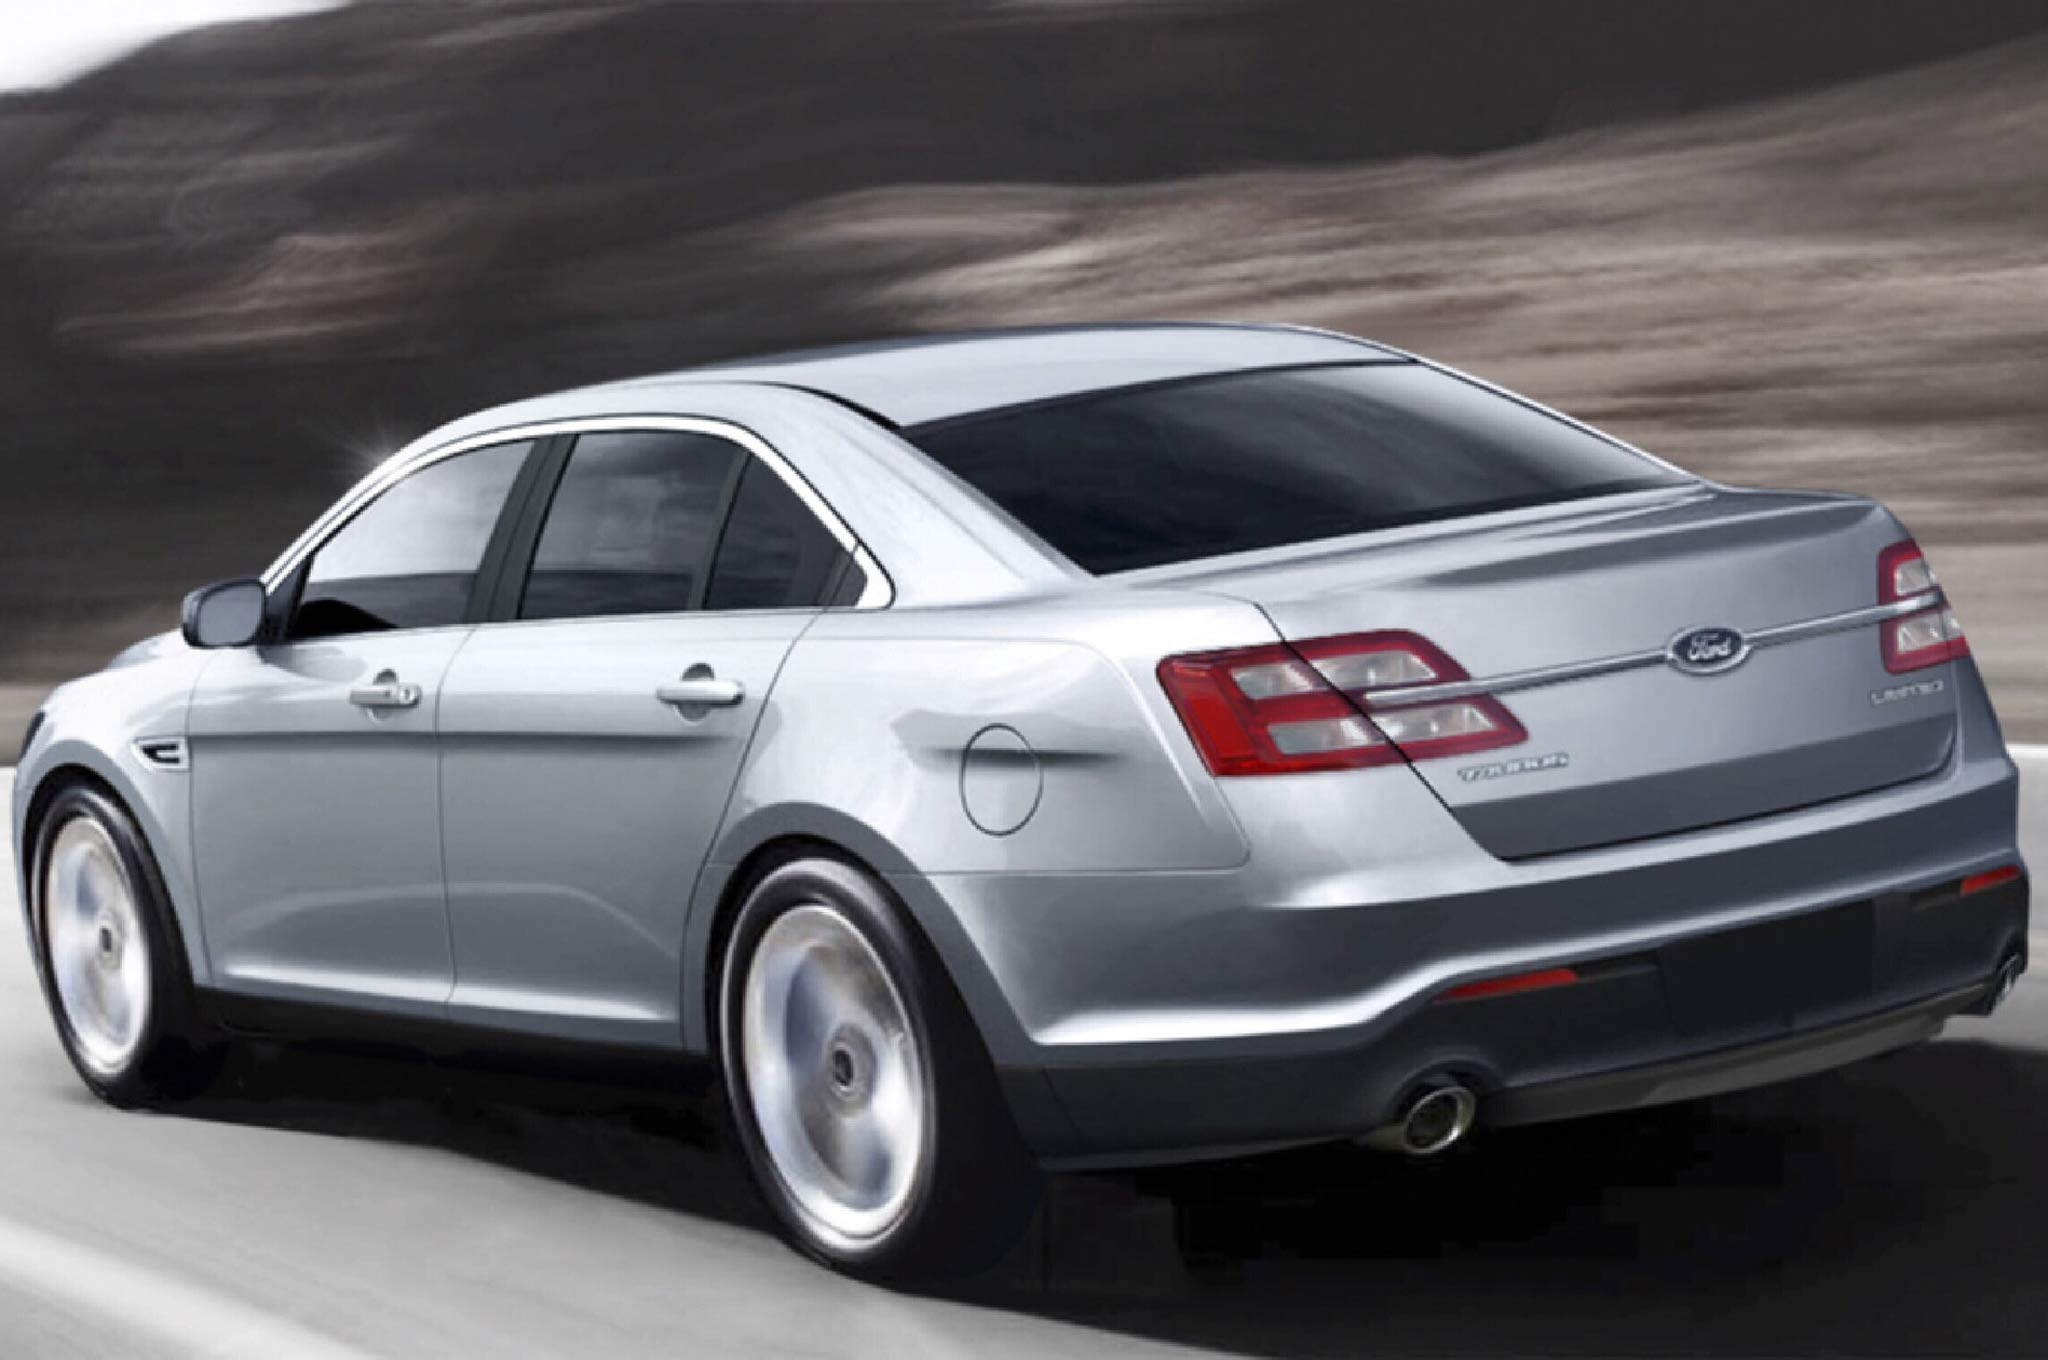 2013 ford taurus sho editors 39 notebook specs automobile magazine. Black Bedroom Furniture Sets. Home Design Ideas